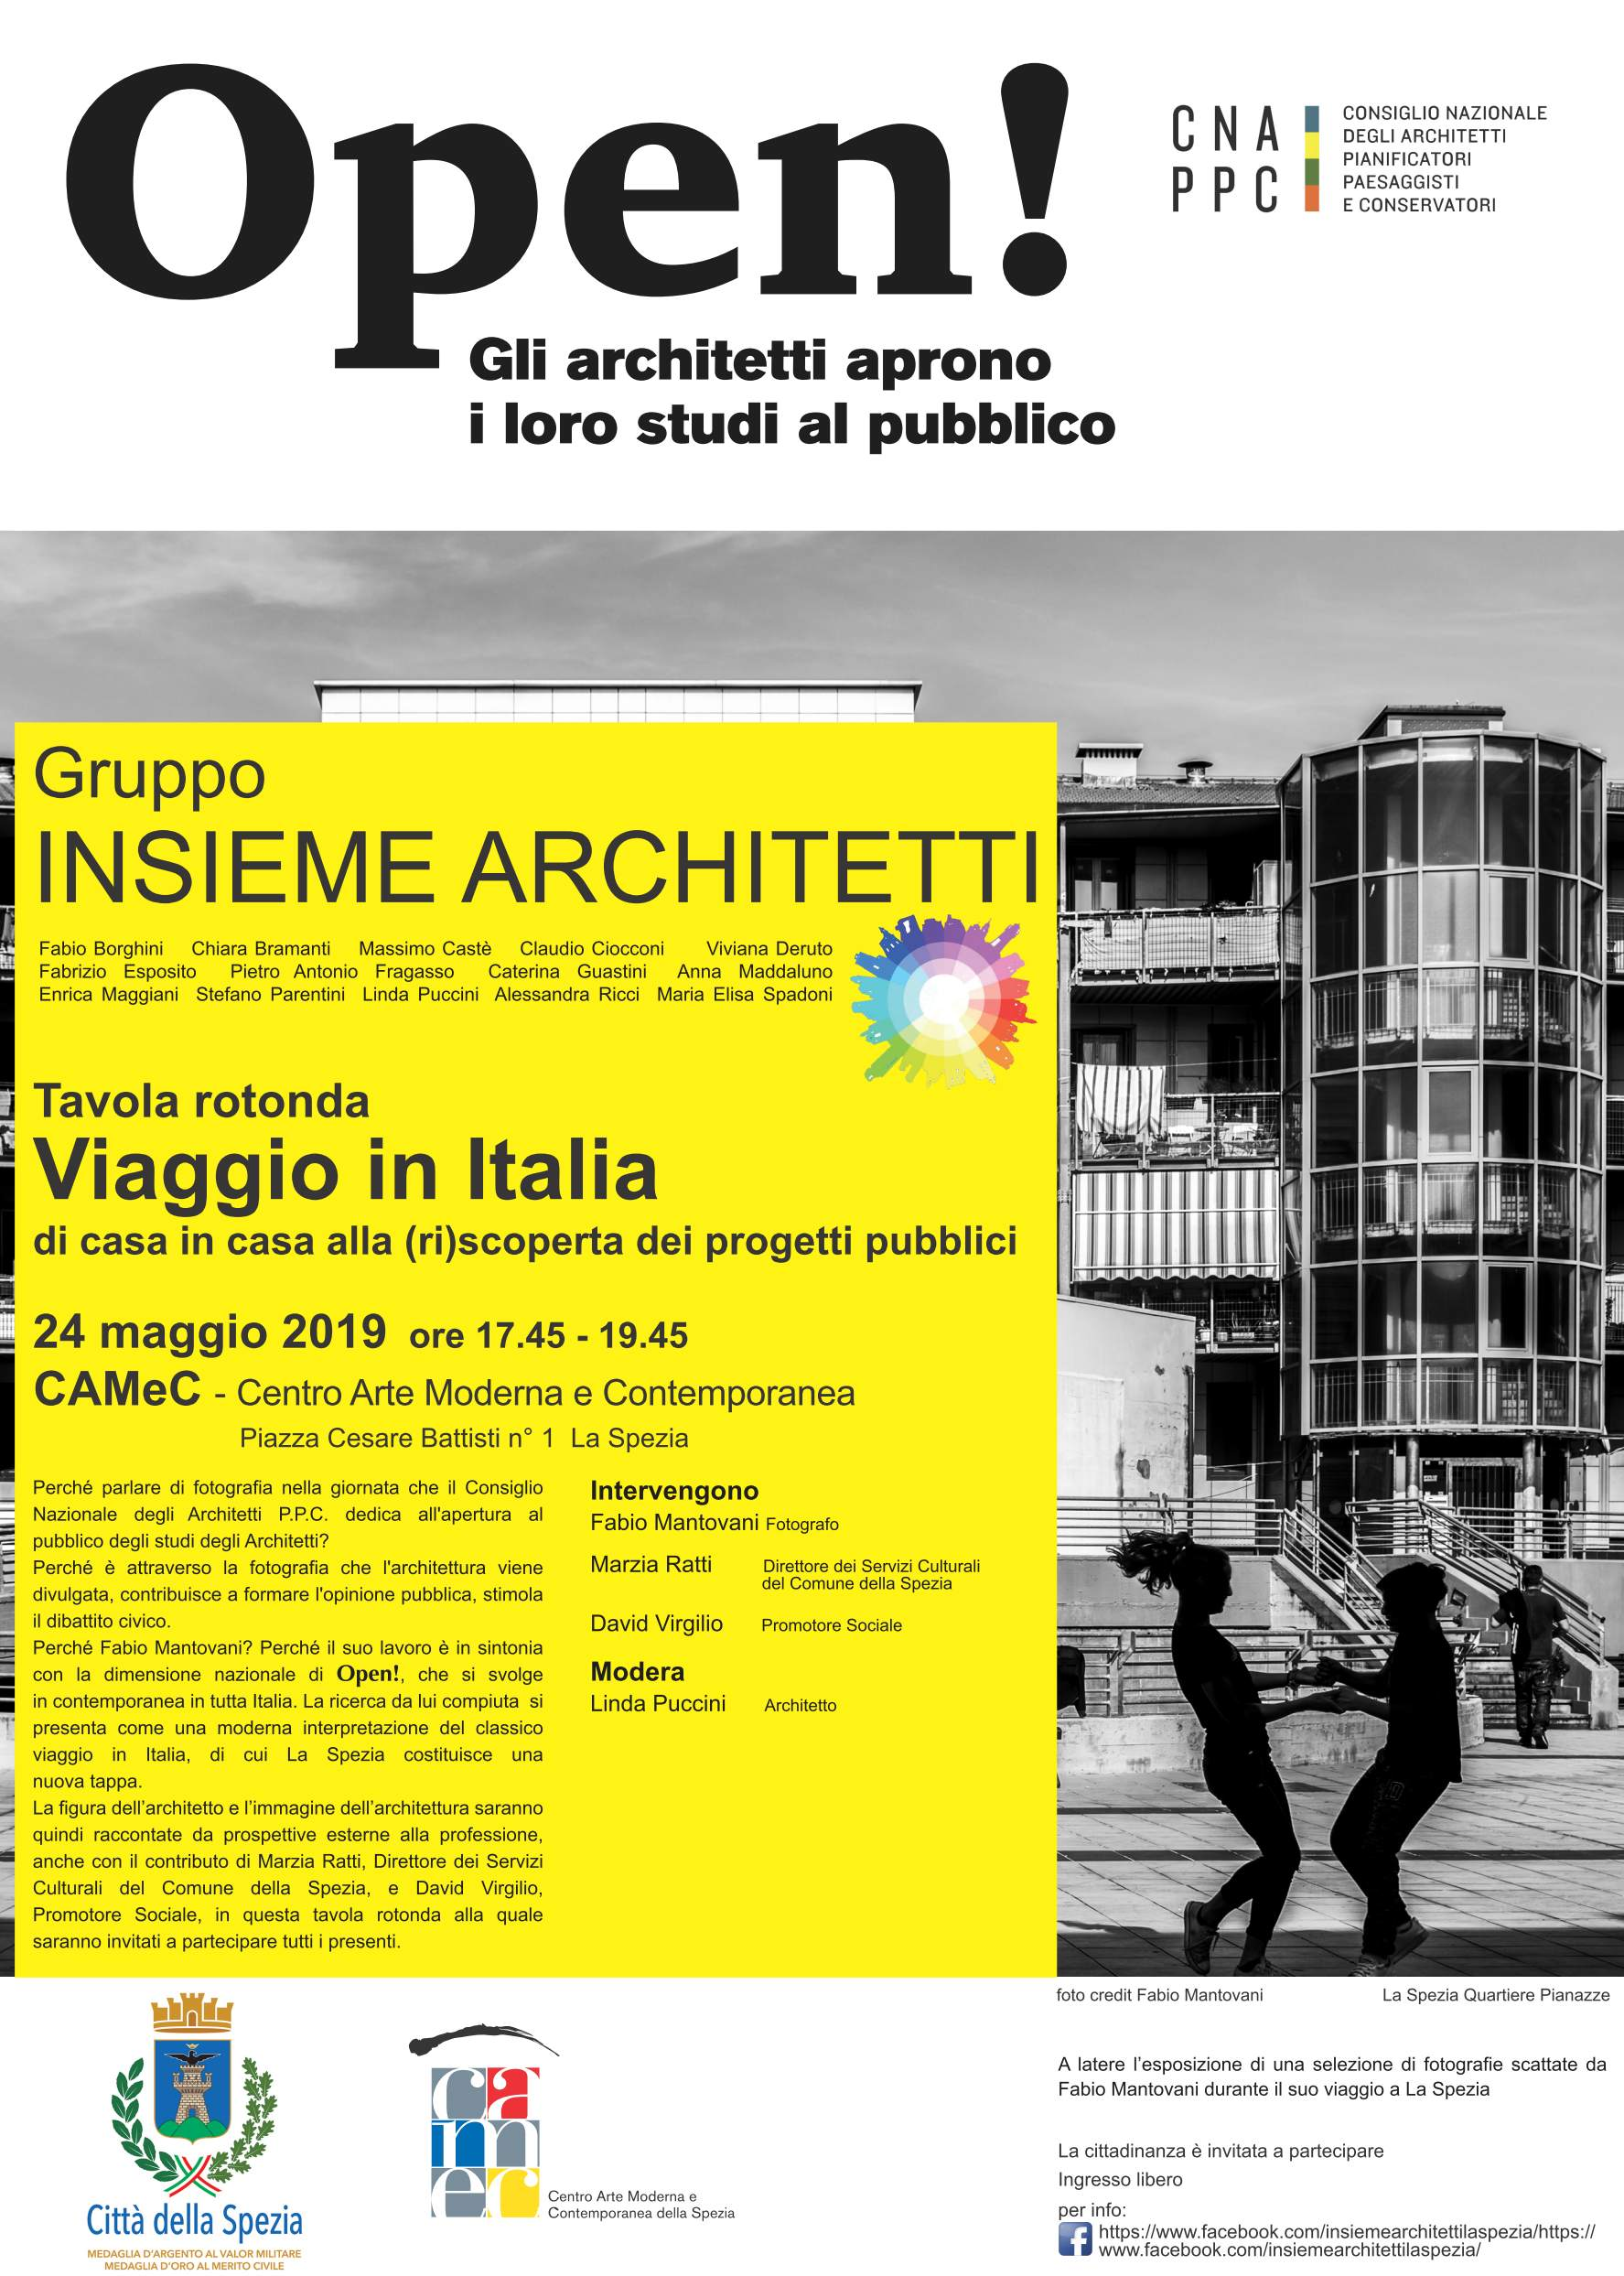 Locandina illustrativa dell'evento